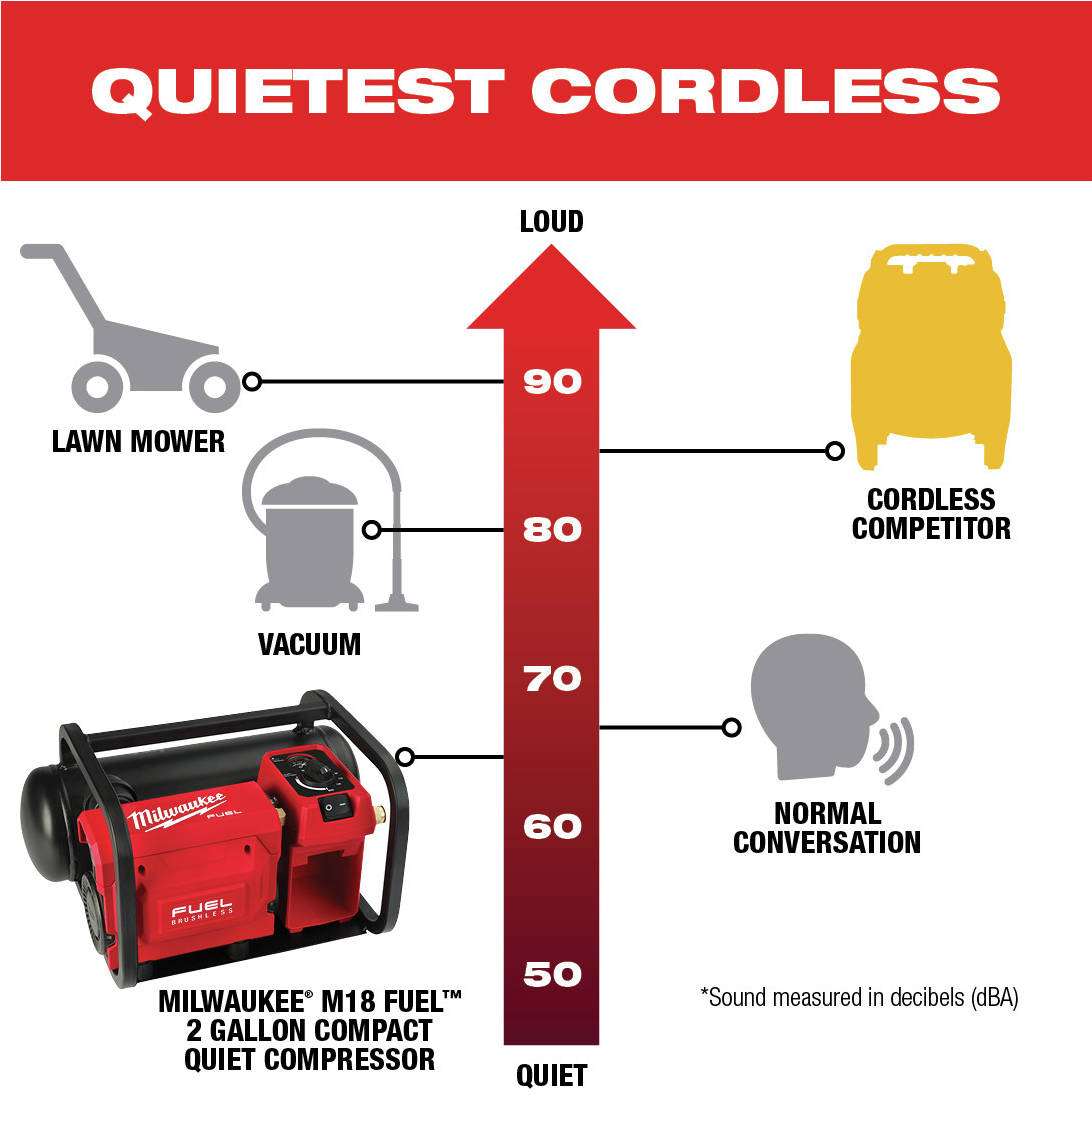 M18 FUEL Compressor is the quietest in the industry